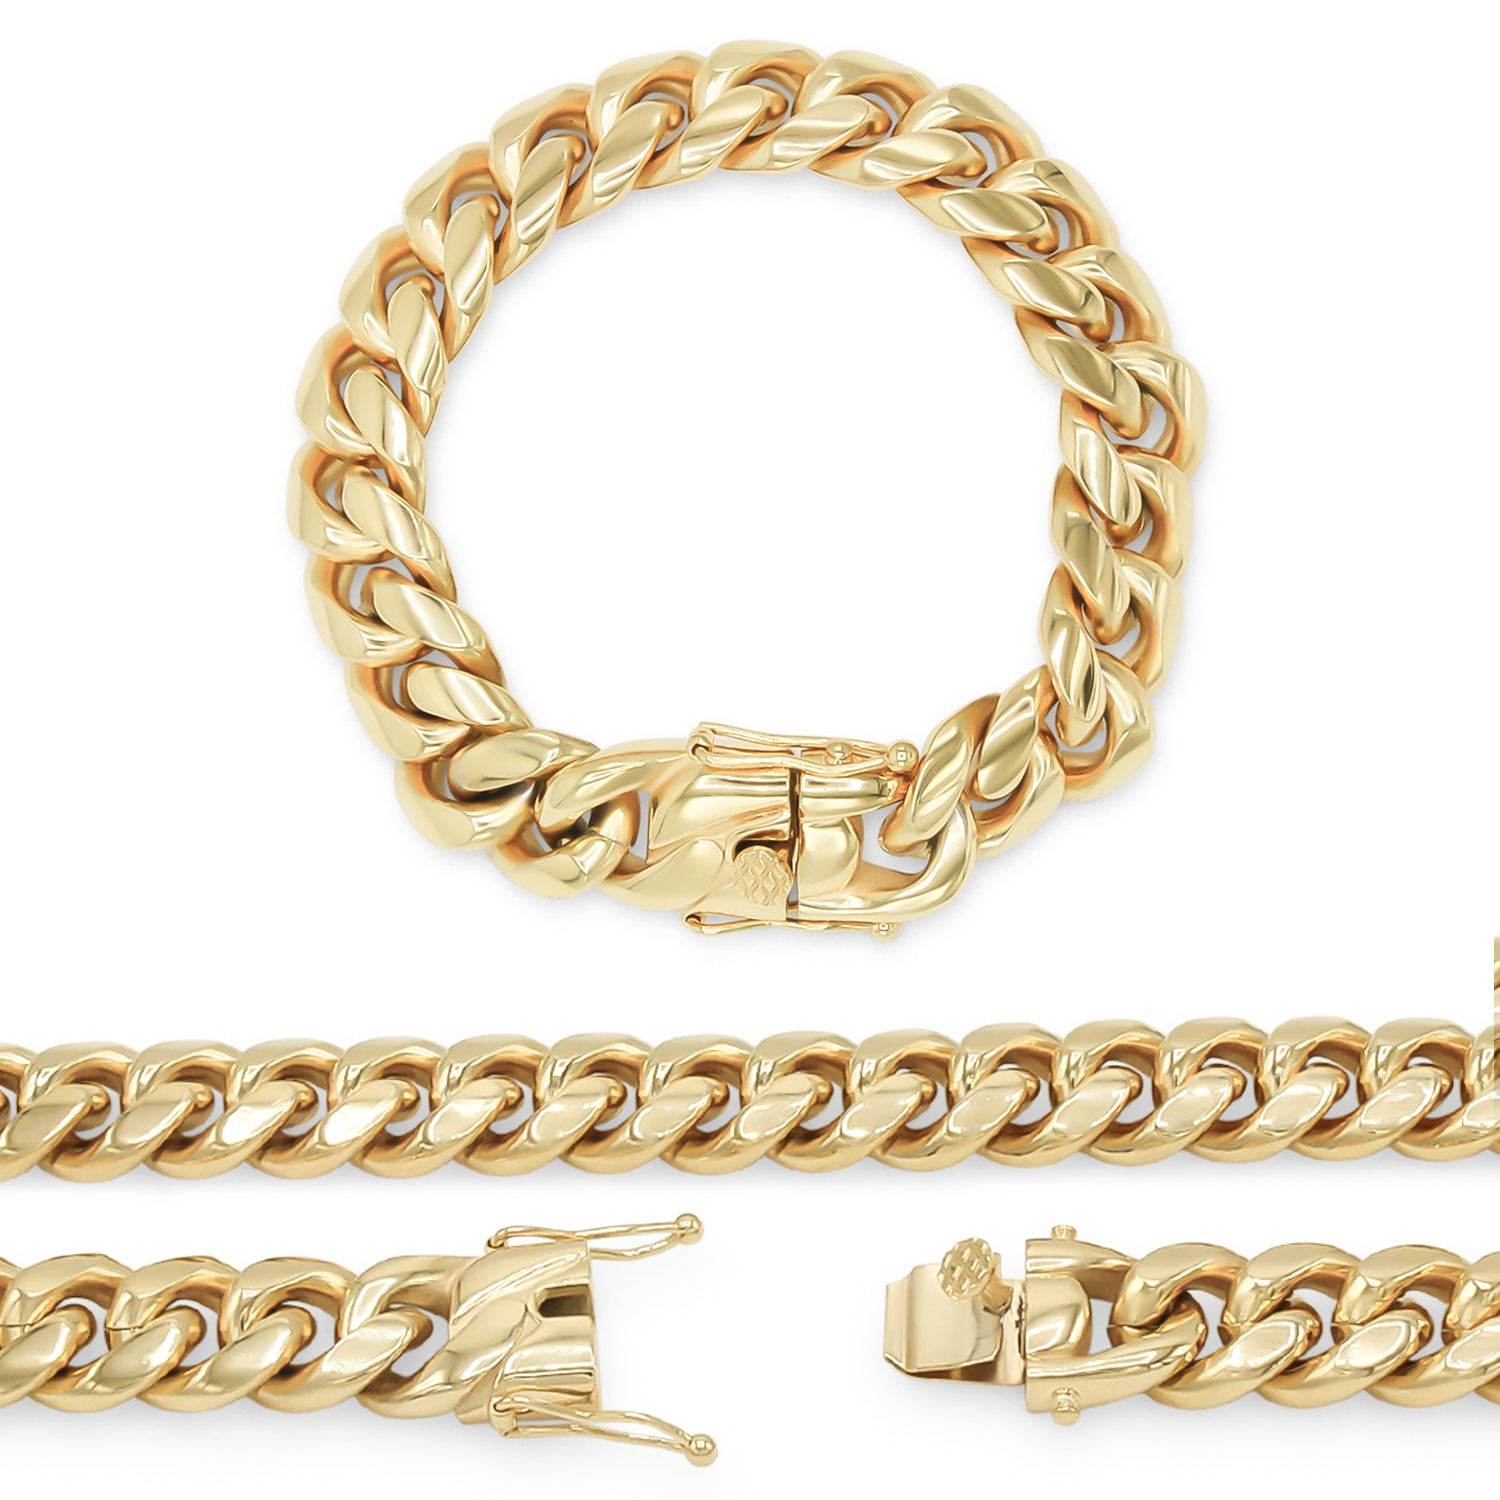 "Cuban Link Chain 14K Gold Plated Curb Bracelet 9.5"" Stainless Steel"